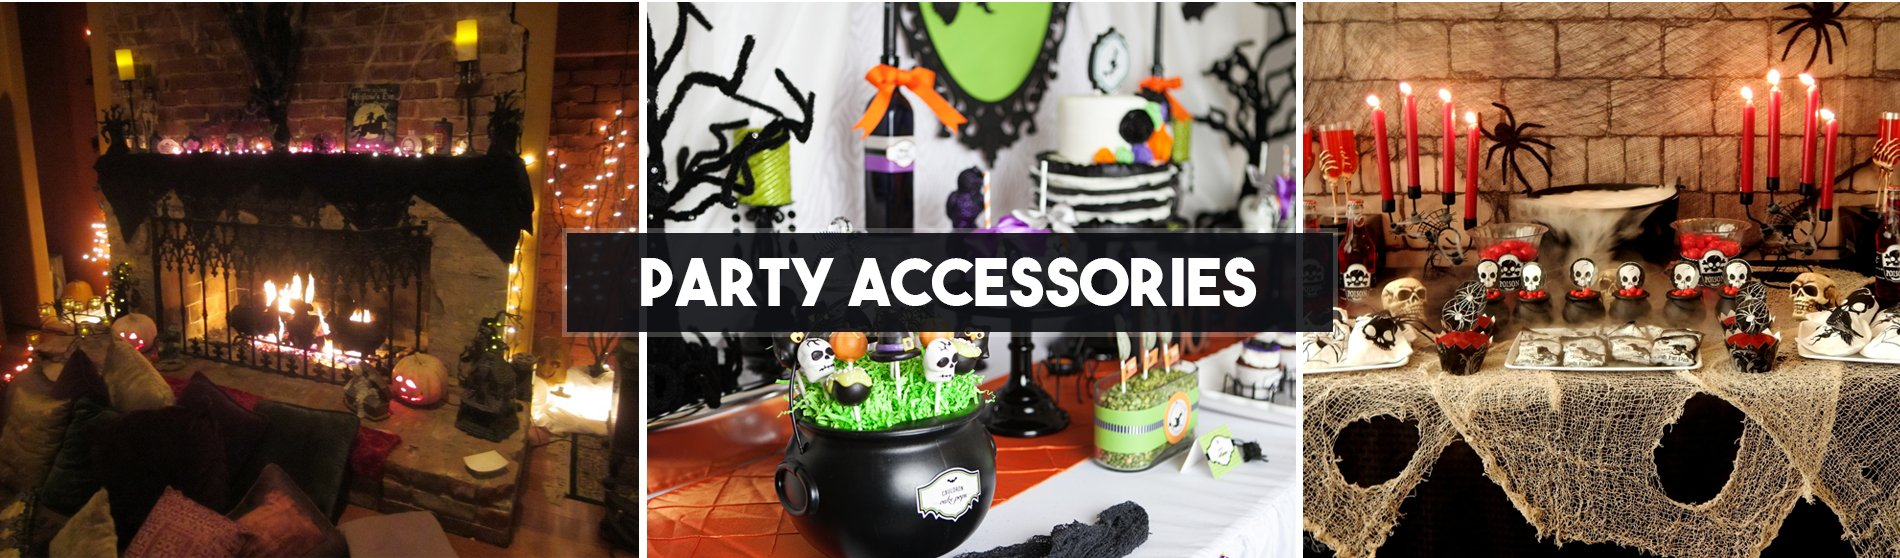 Party-Accessories